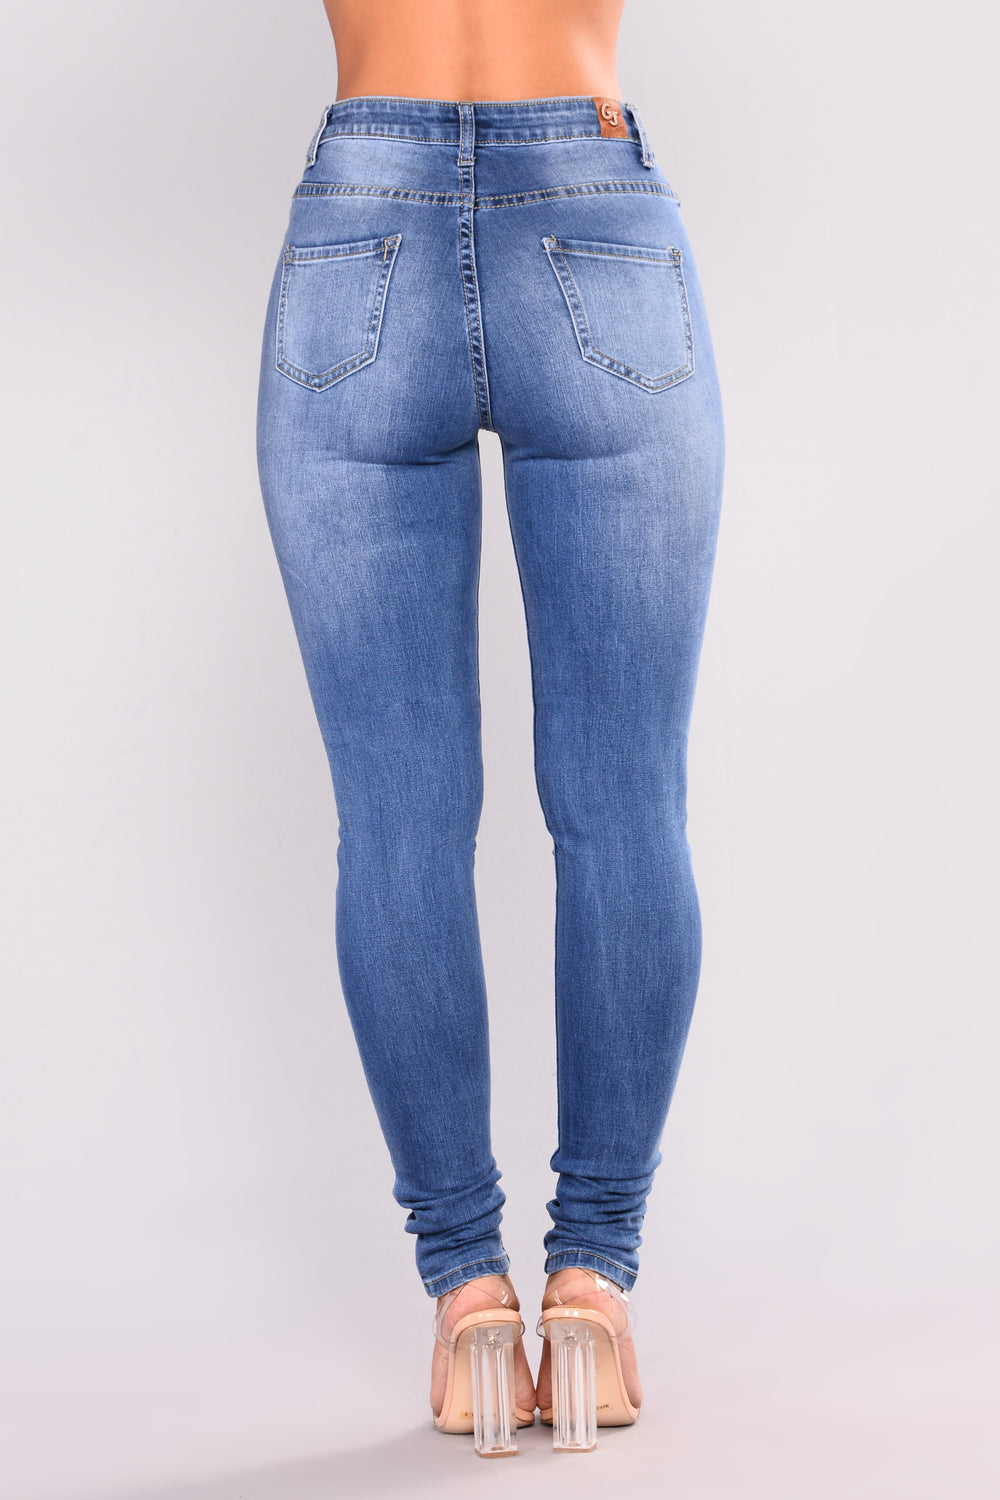 Bad Intentions Skinny Jeans - Medium Blue Wash